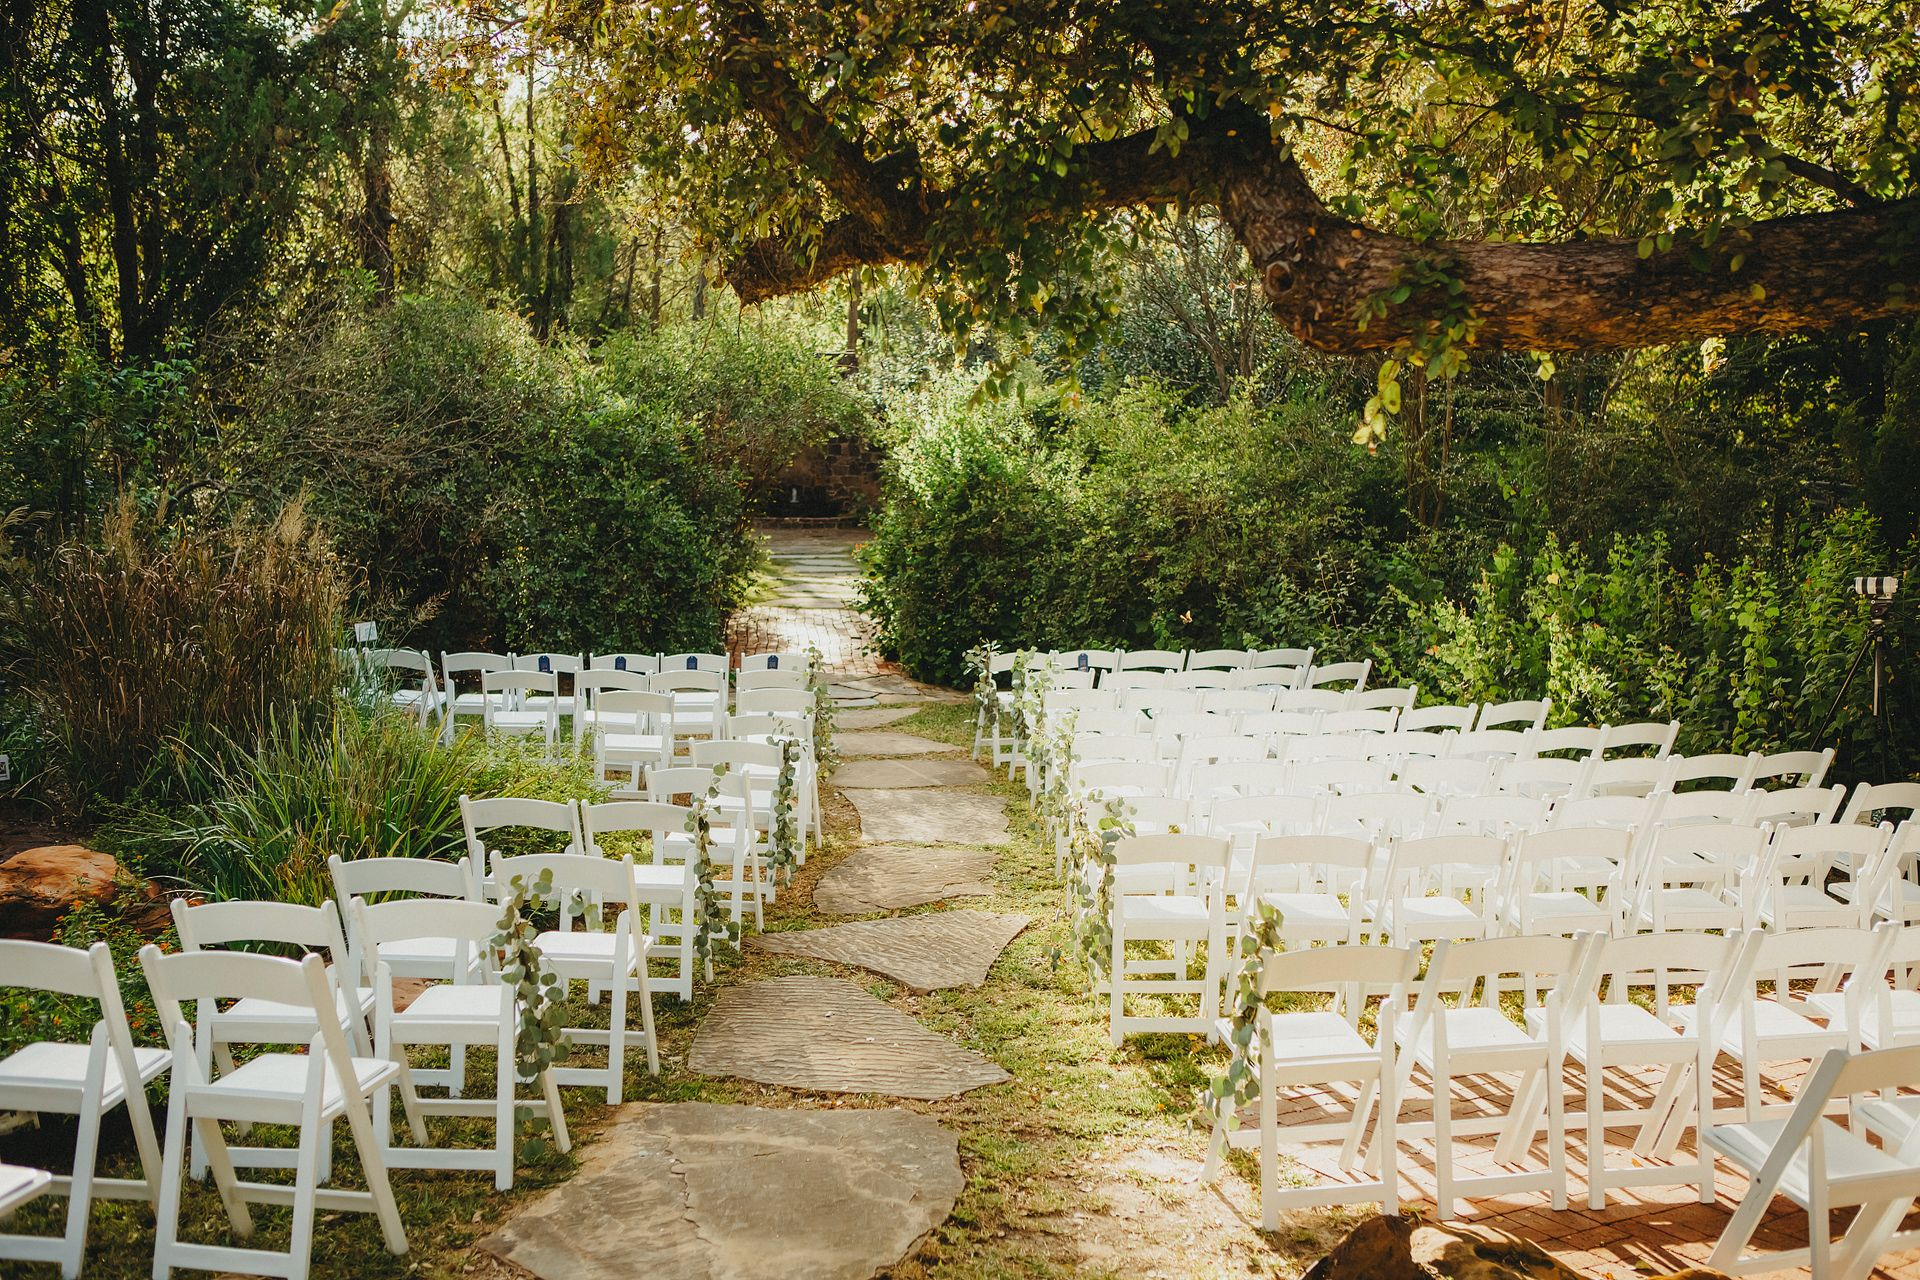 #dfwoutdoorgardenvenue #fortworthgardenweddings #texaswedding #dfwweddingvenue